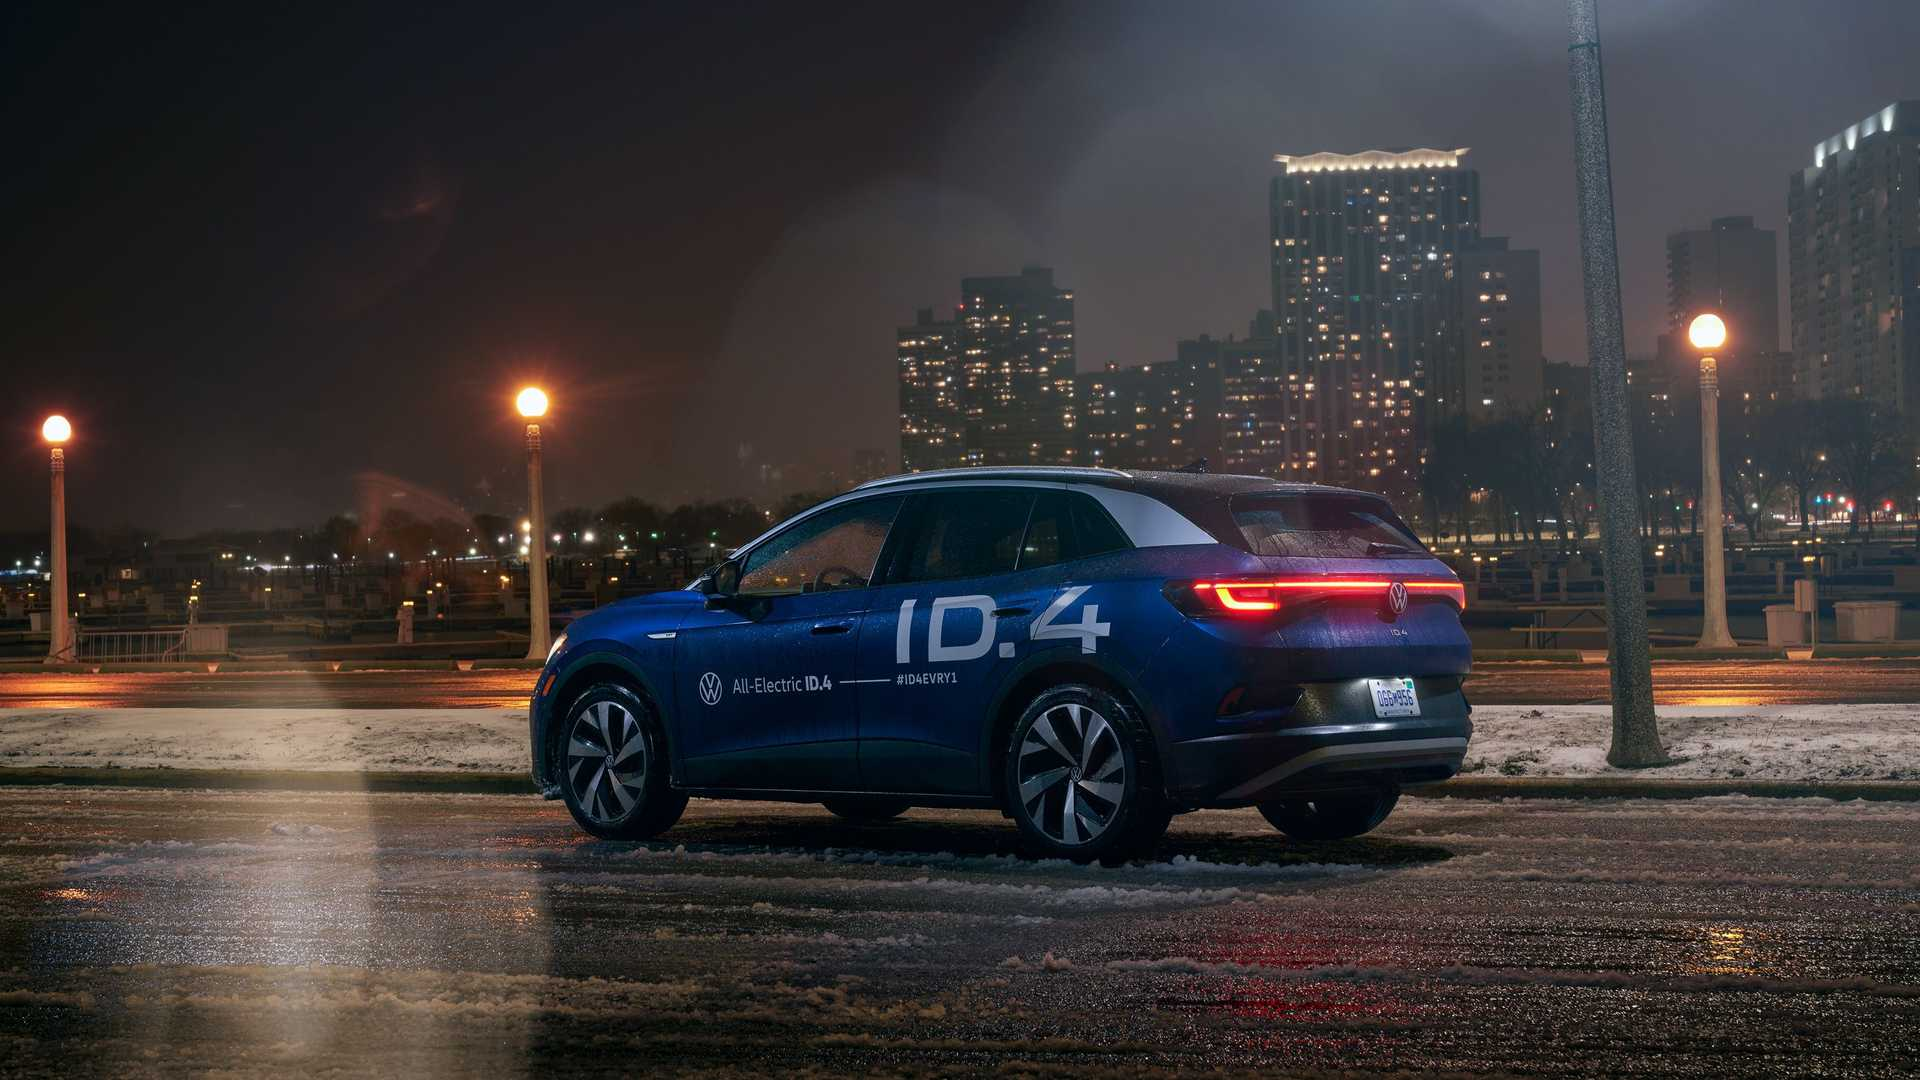 volkswagen-id.4-completes-cross-country-drive-night-rear.jpg